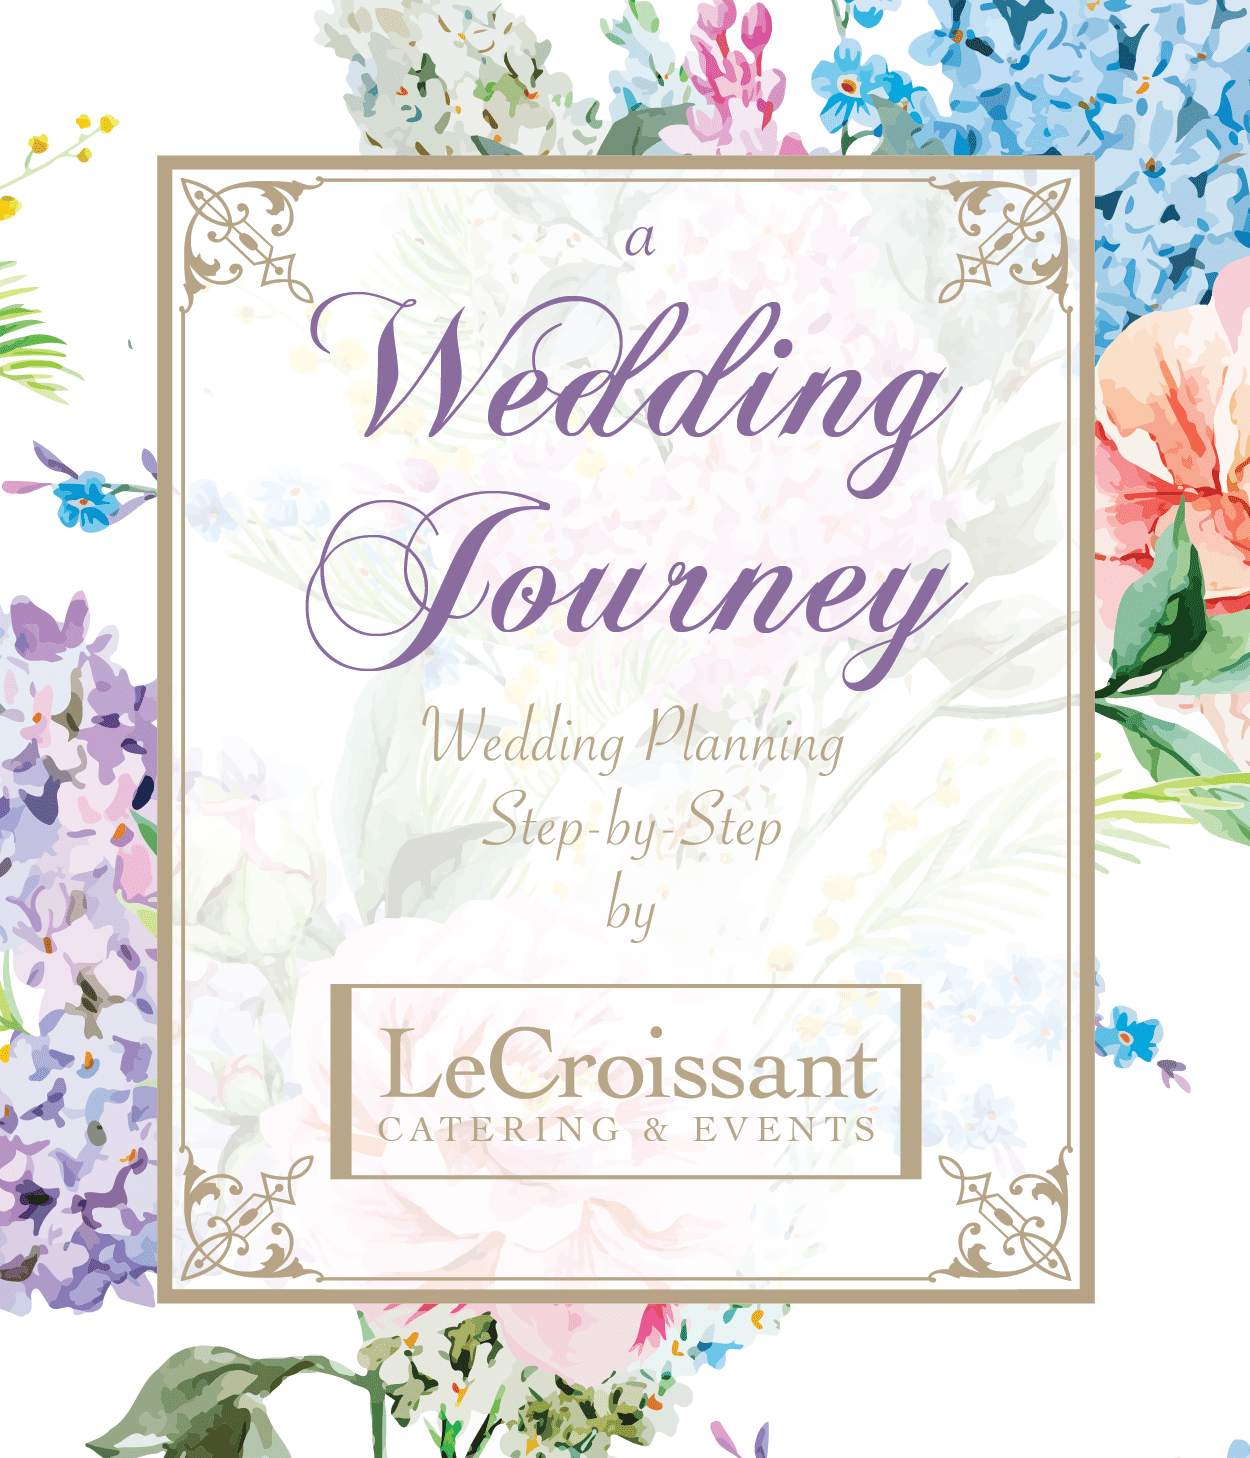 Follow in real time a real couple planning their wedding and navigating wedding planning with Lux Catering and Events - Utah's Premier wedding caterer and wedding planner wedding planning A Wedding Journey; Step-by-Step Wedding Planning with LeCroissant weddingjourneysquare 01